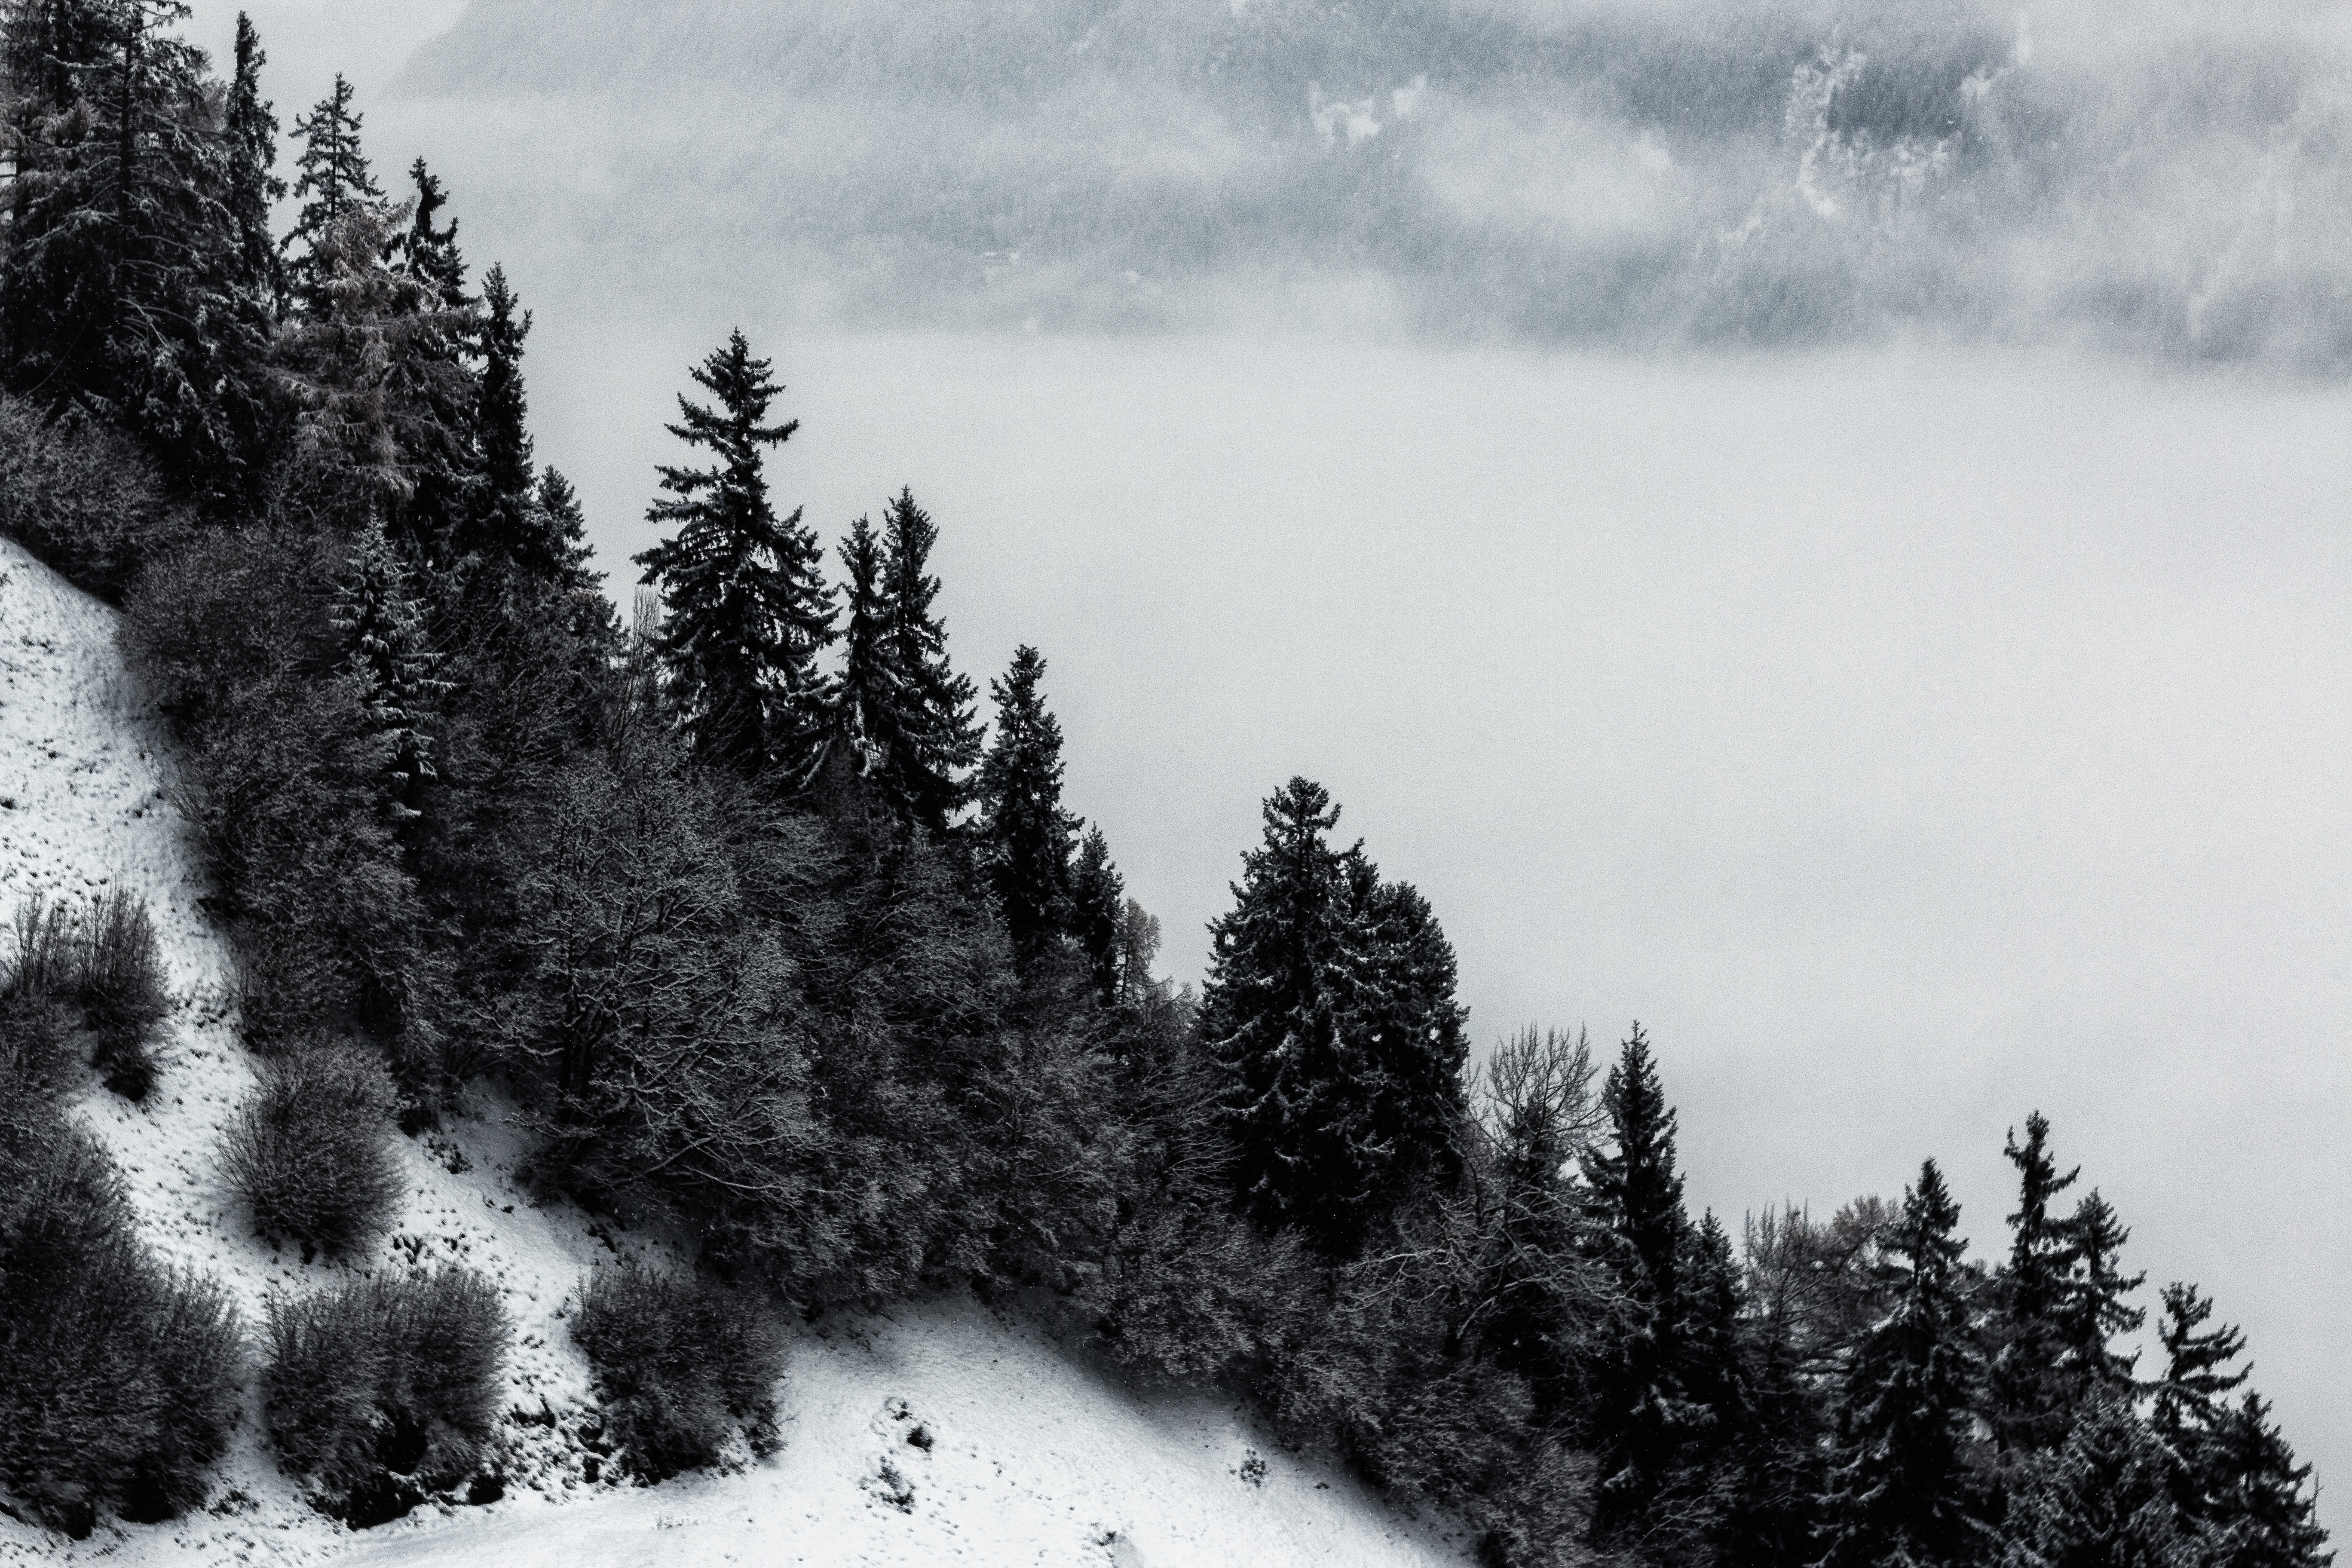 Grayscale Photo Of Pine Trees And Mountain, Black and white, Nature, Winter, Weather, HQ Photo